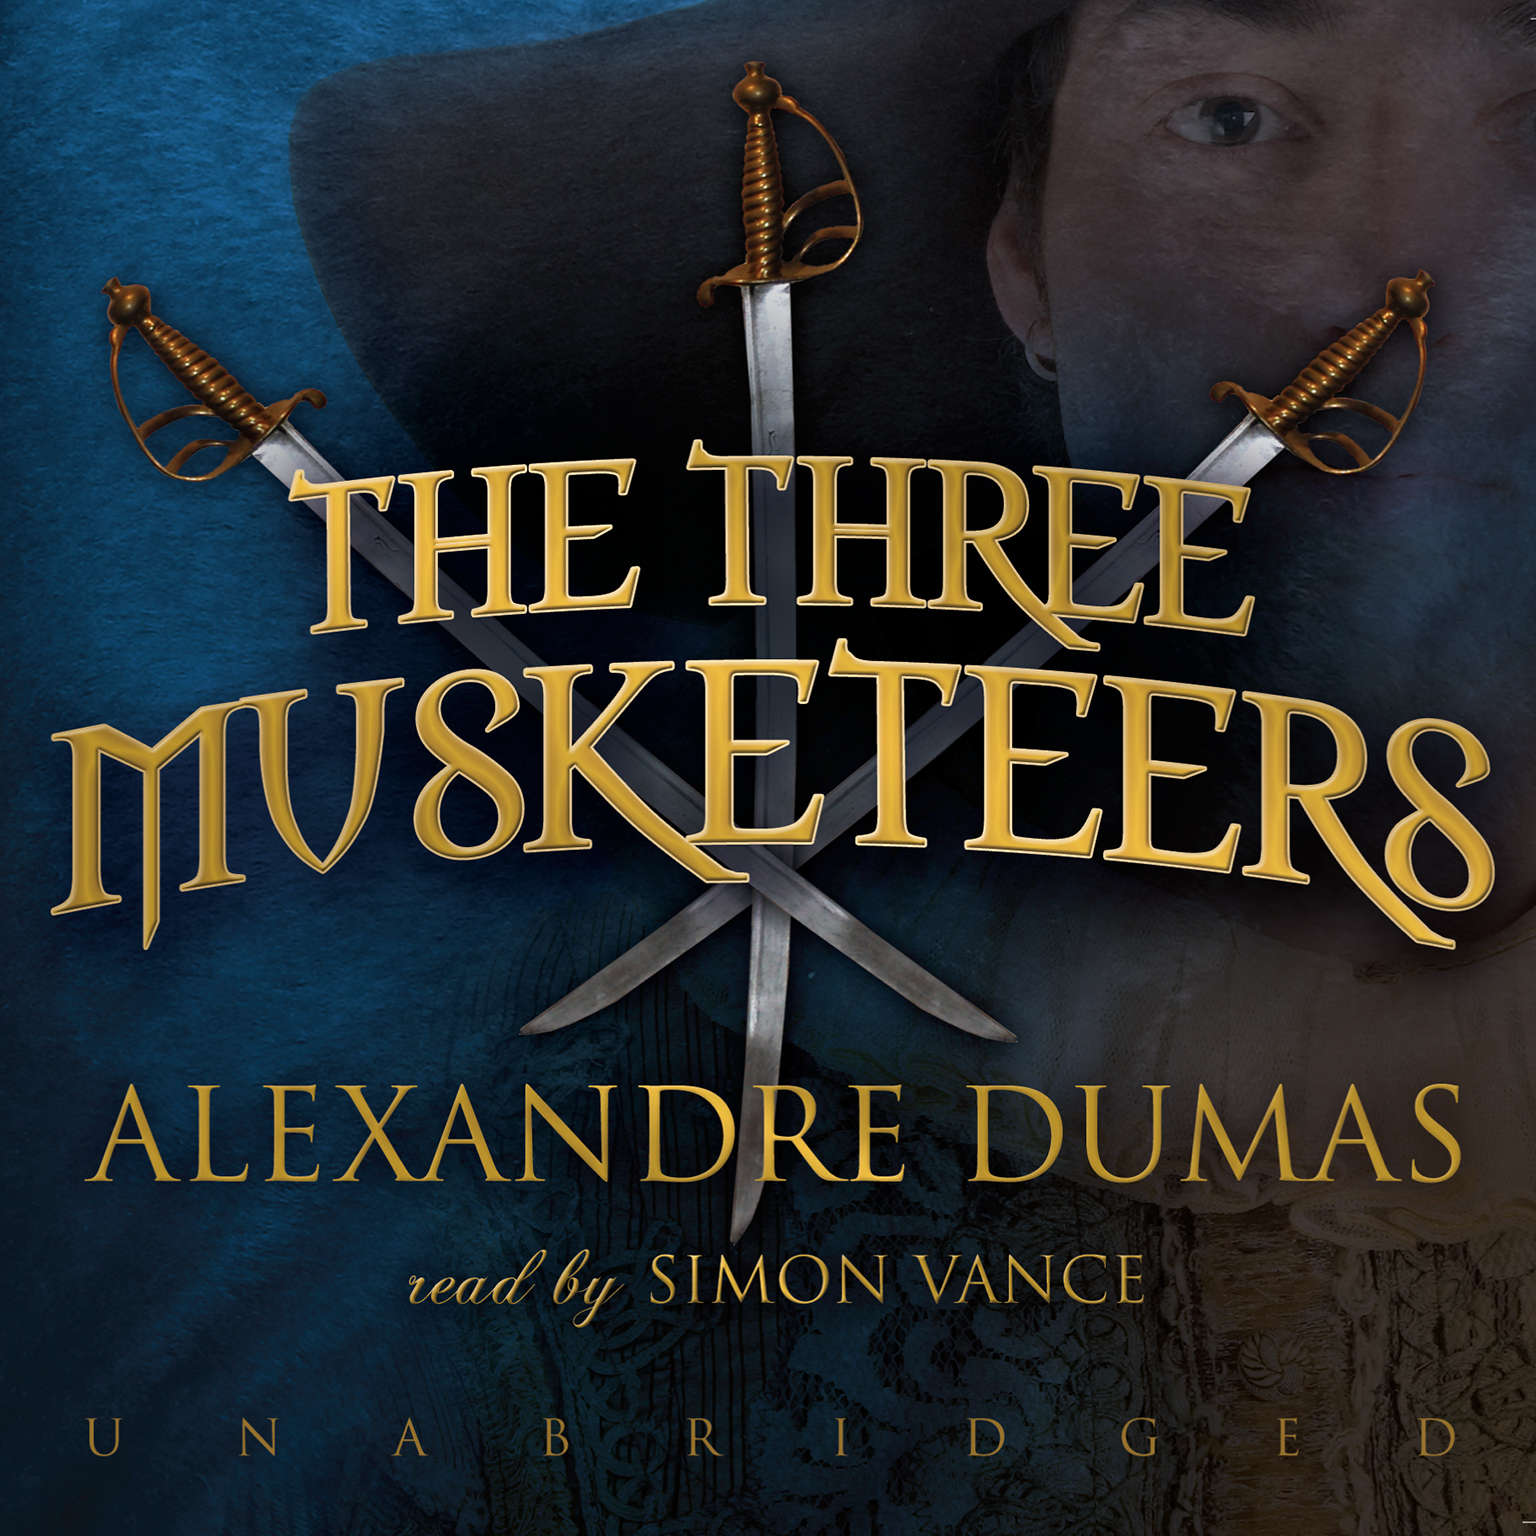 an analysis of the three musketeers a novel by alexandre dumas The three musketeers [alexandre dumas] on amazoncom free shipping on qualifying offers the three musketeers is a novel by alexandre dumas set in the 17th.